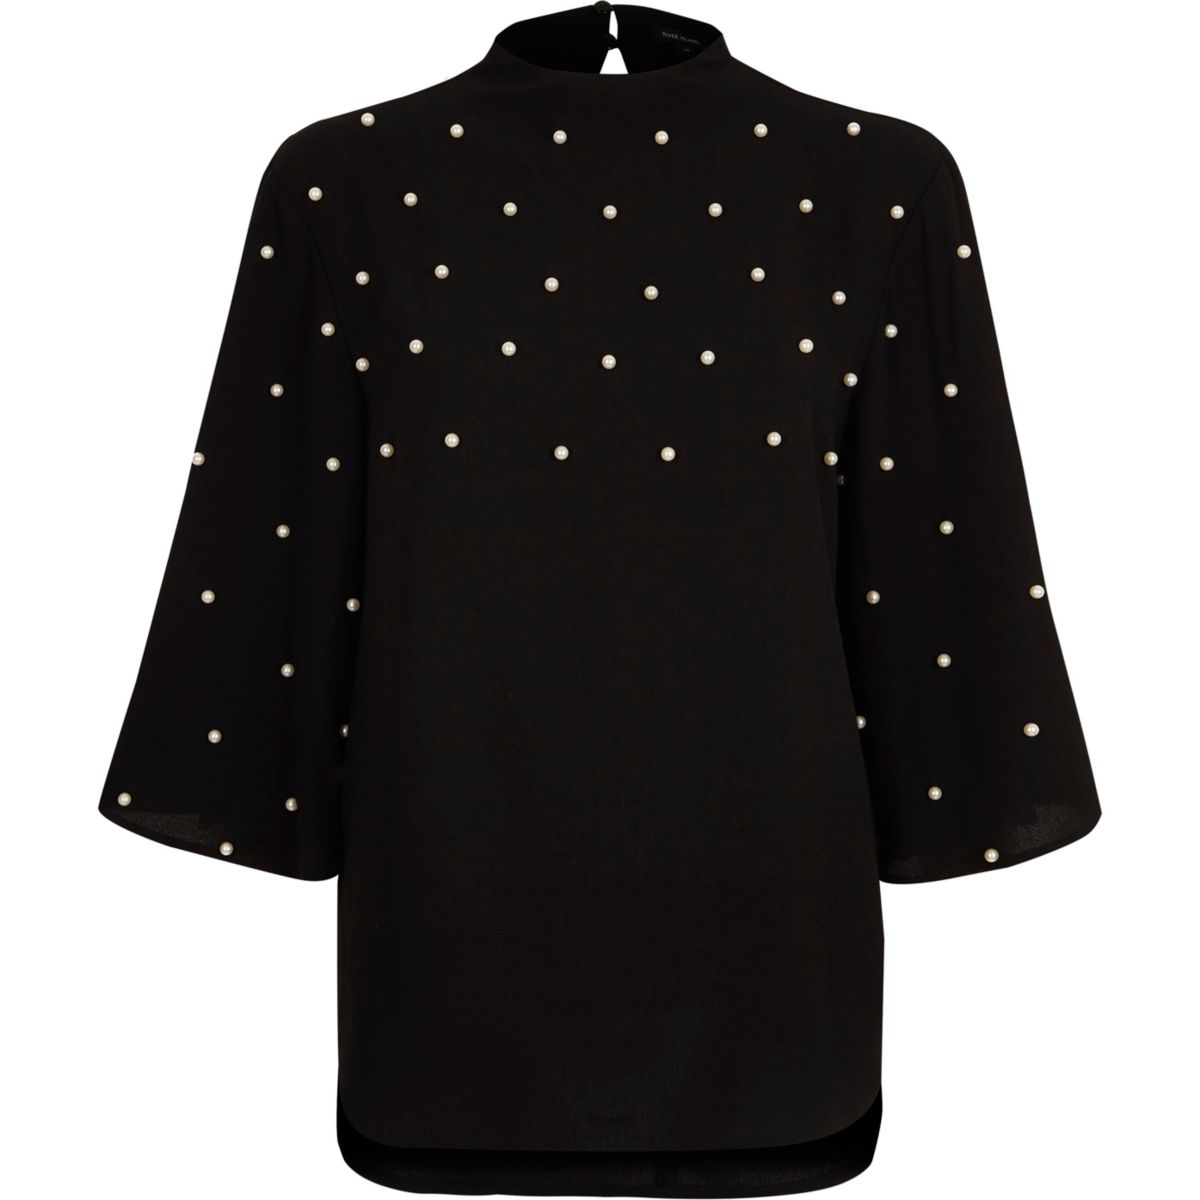 River Island Women's Black Faux Pearl High Neck Cape Top